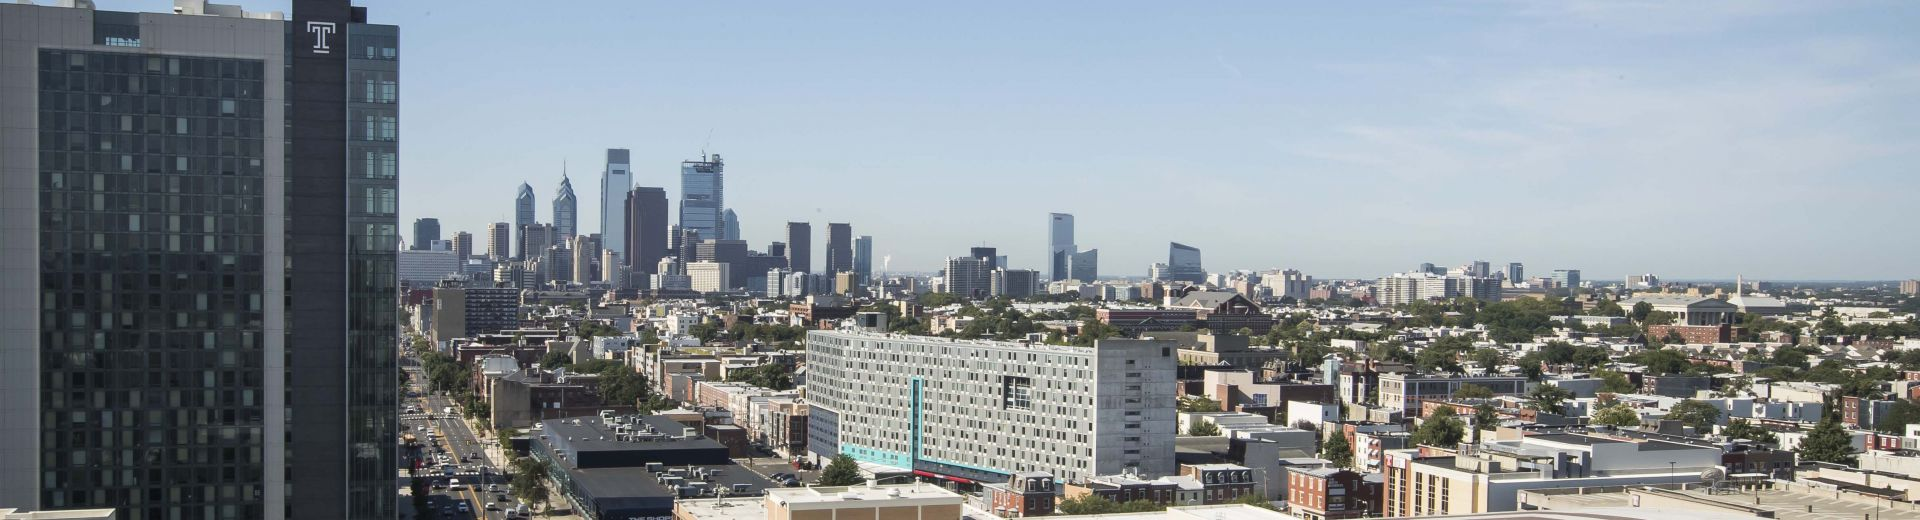 Picture of Philadelphia skyline from Morgan Hall.